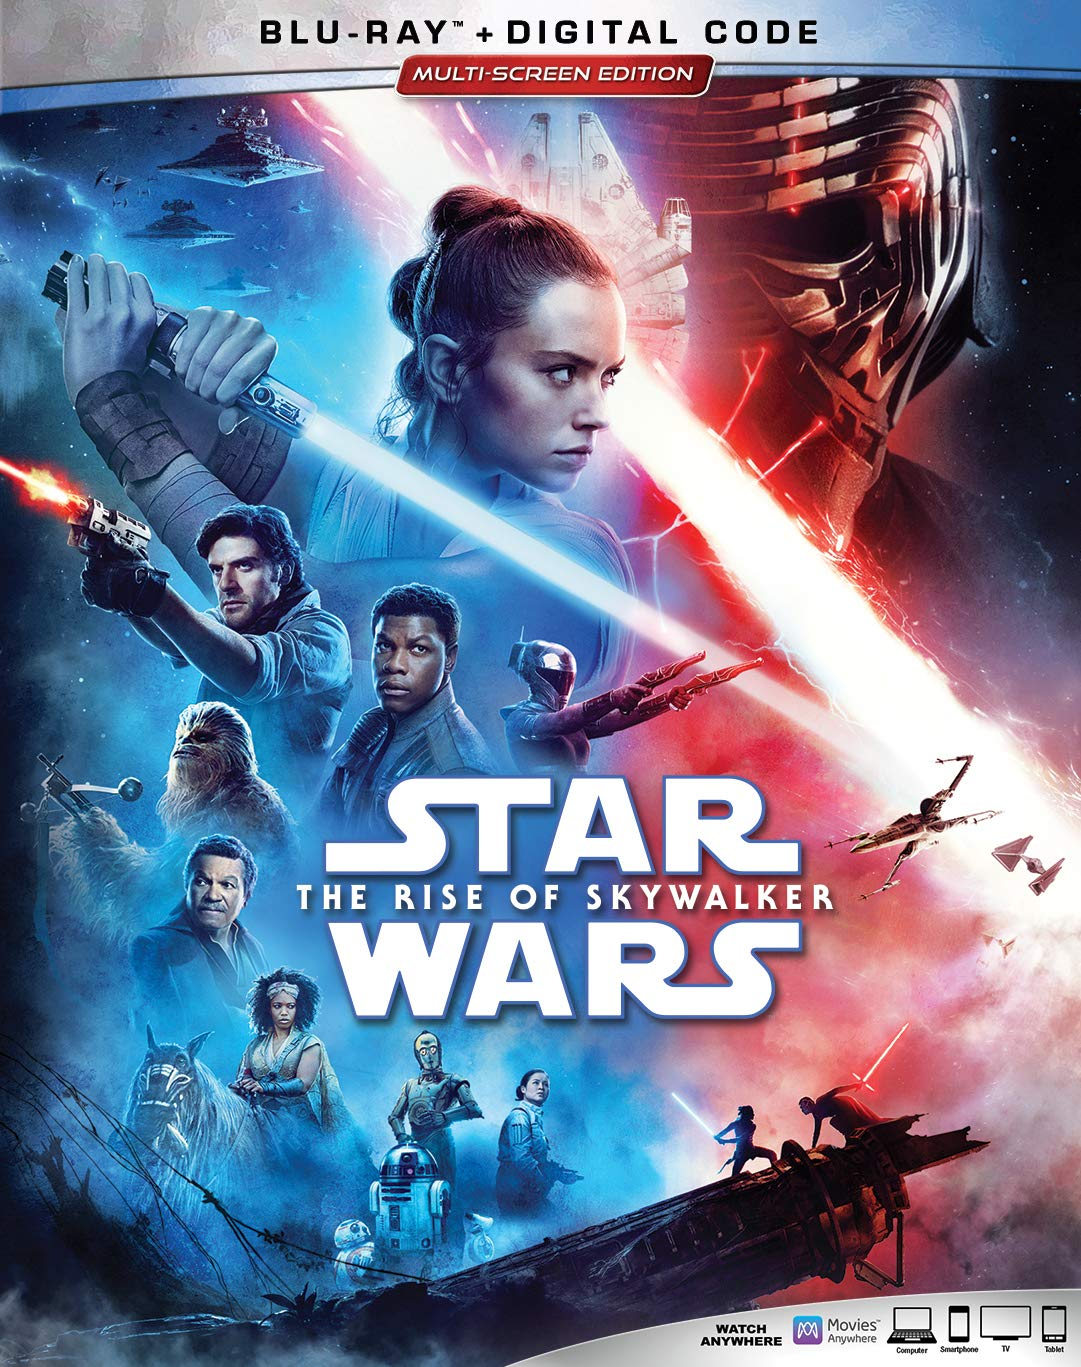 Star Wars: The Rise of Skywalker (2019) 720p BluRay ORG. [Dual Audio] [Hindi (Original) or English] ESubs [1.2GB]